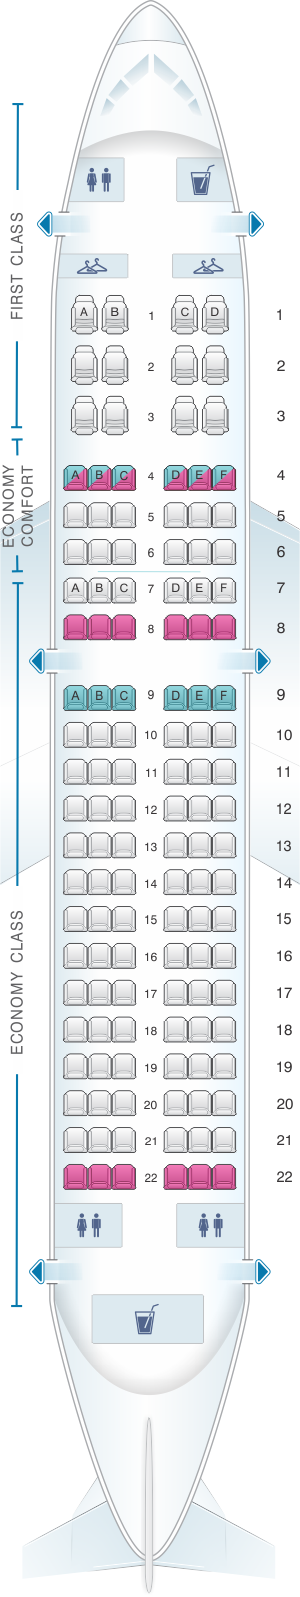 Seat Map For Delta Airlines Airbus A319 100